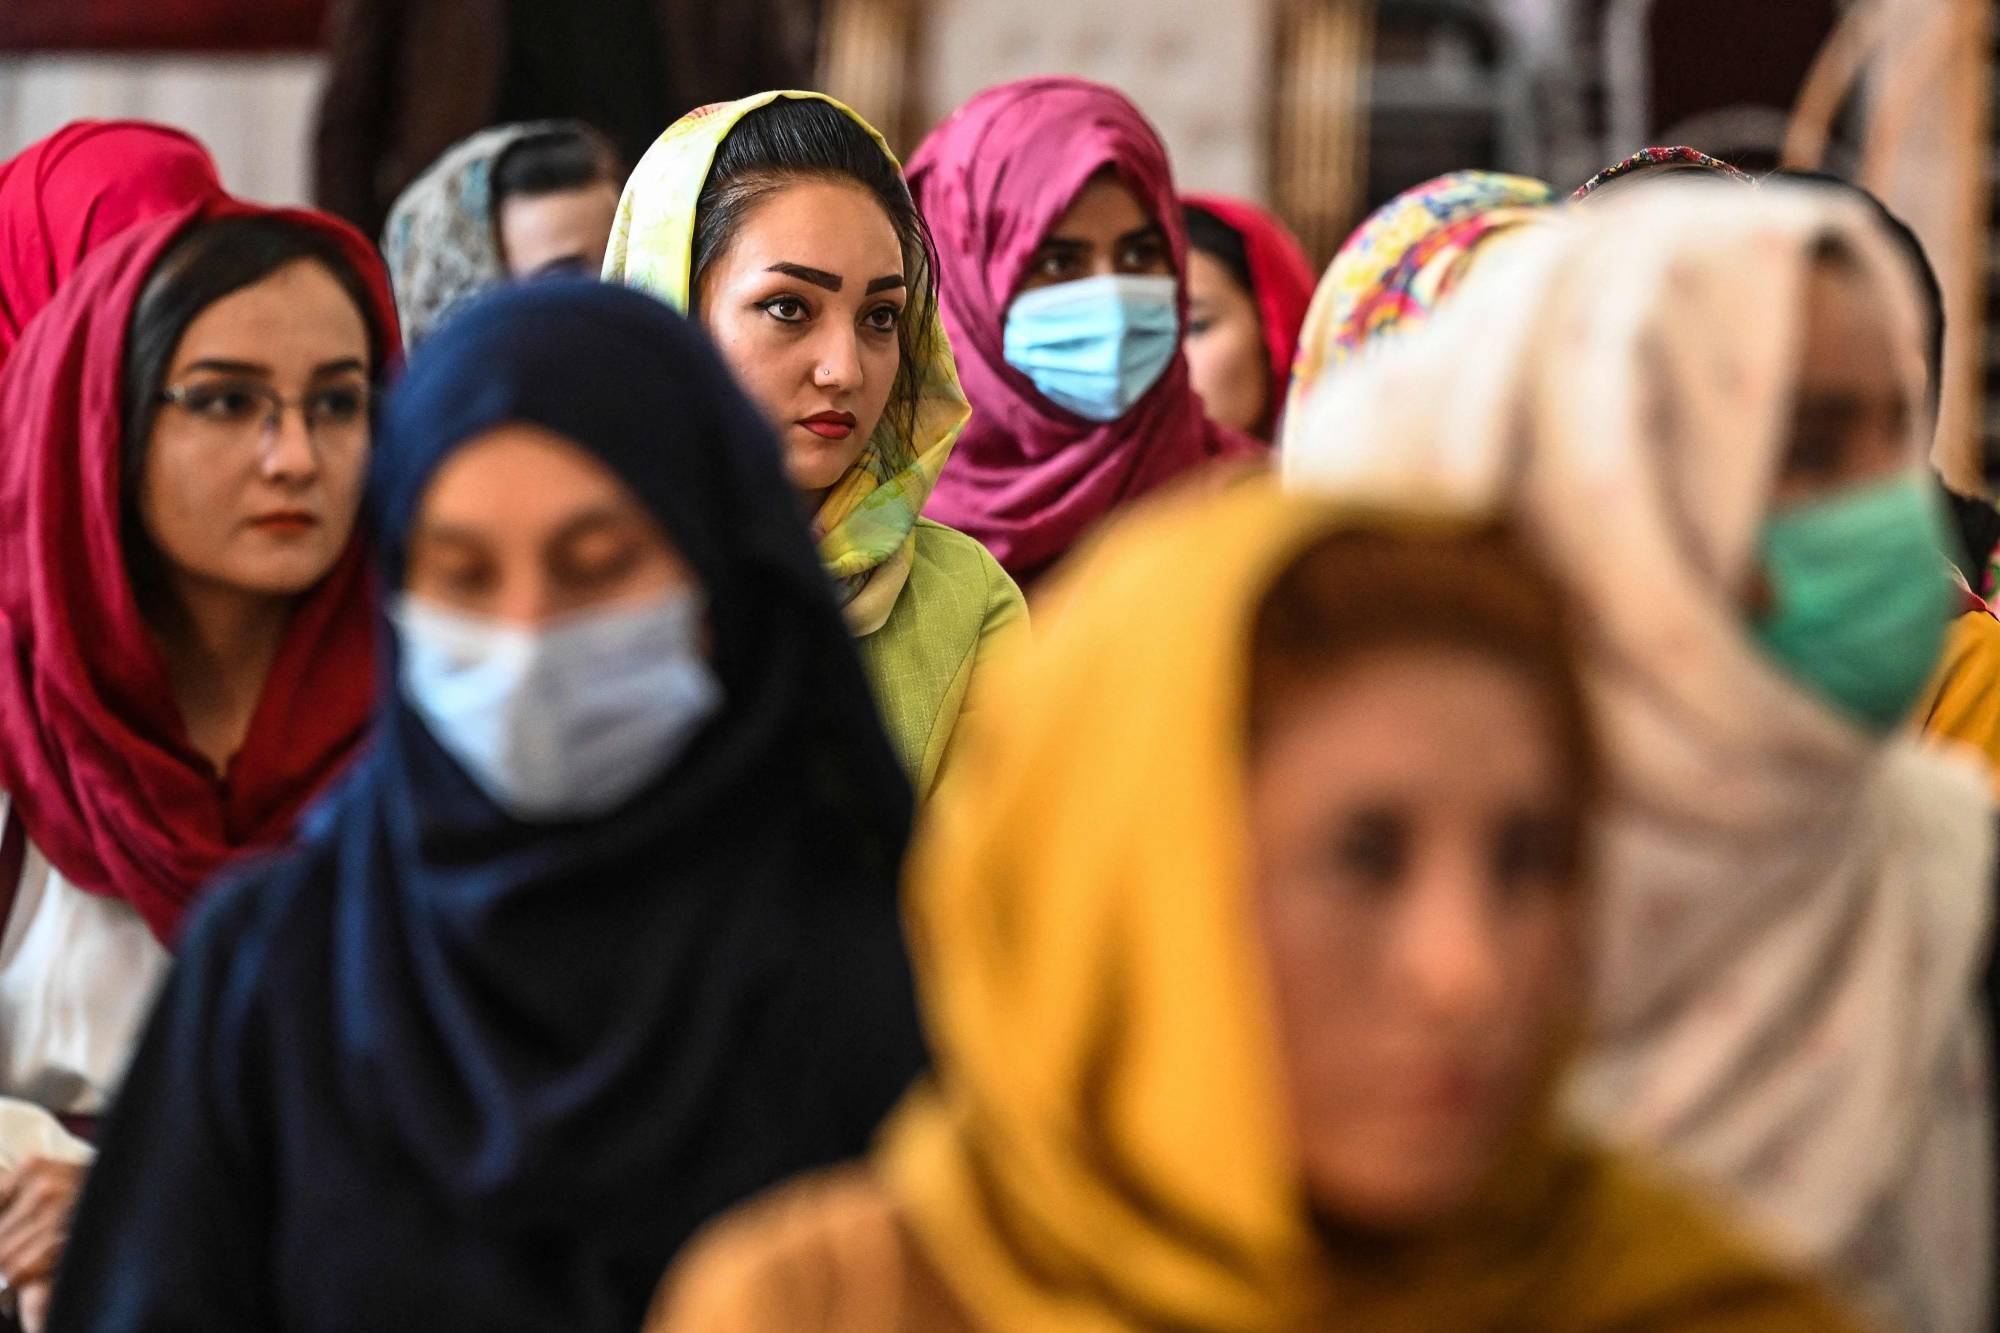 Afghan women take part in a gathering in Kabul on Aug. 2 to speak out against human rights violations by the Taliban regime. | AFP-JIJI